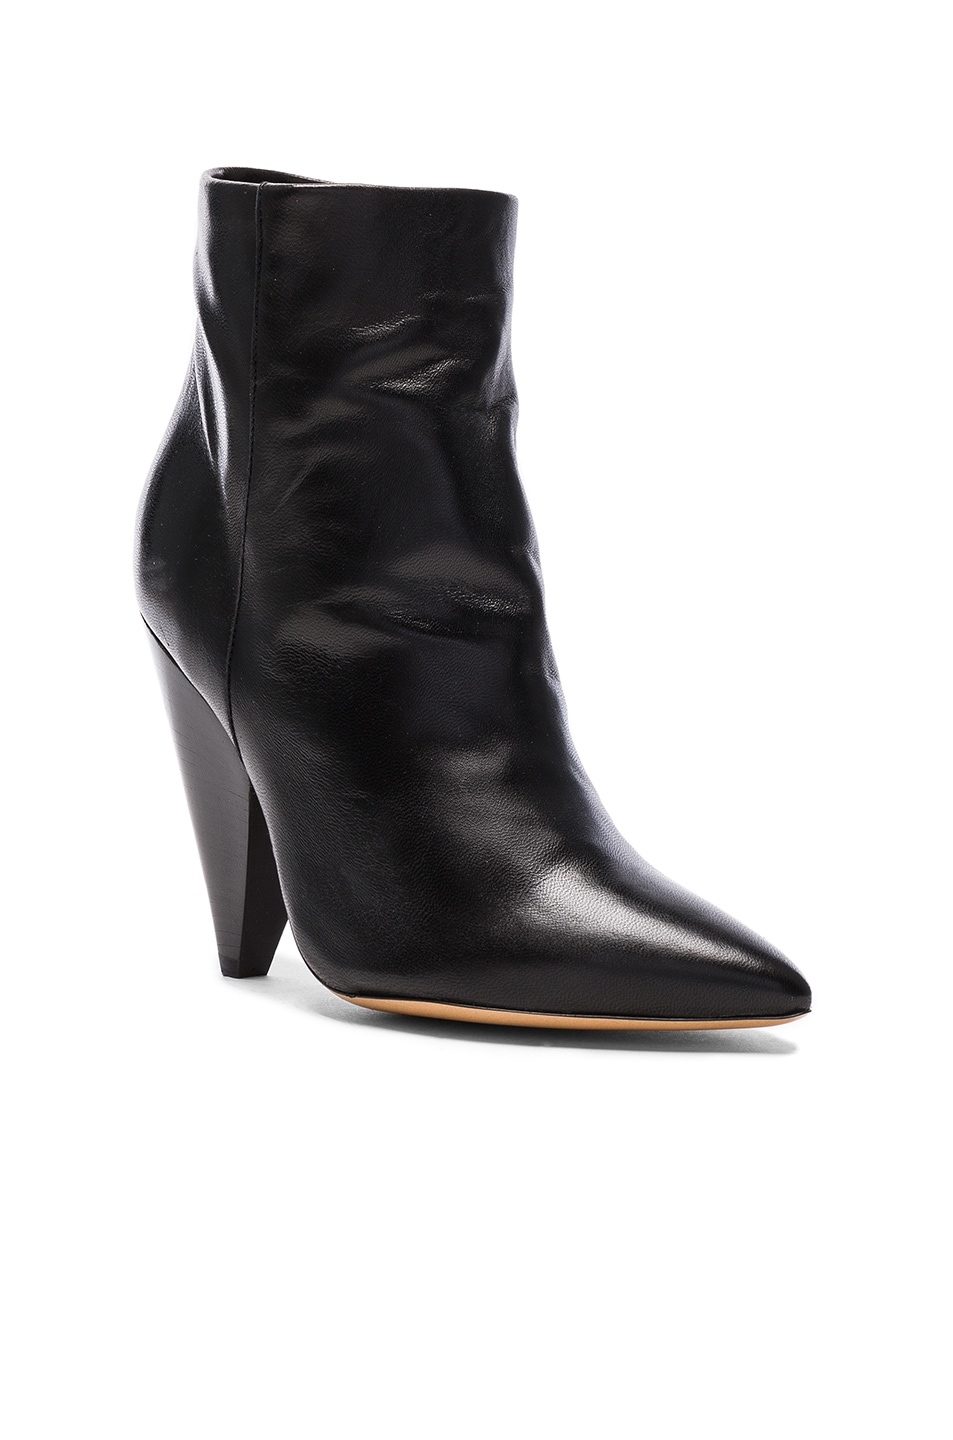 Image 2 of Isabel Marant Leather Leydoni Booties in Black